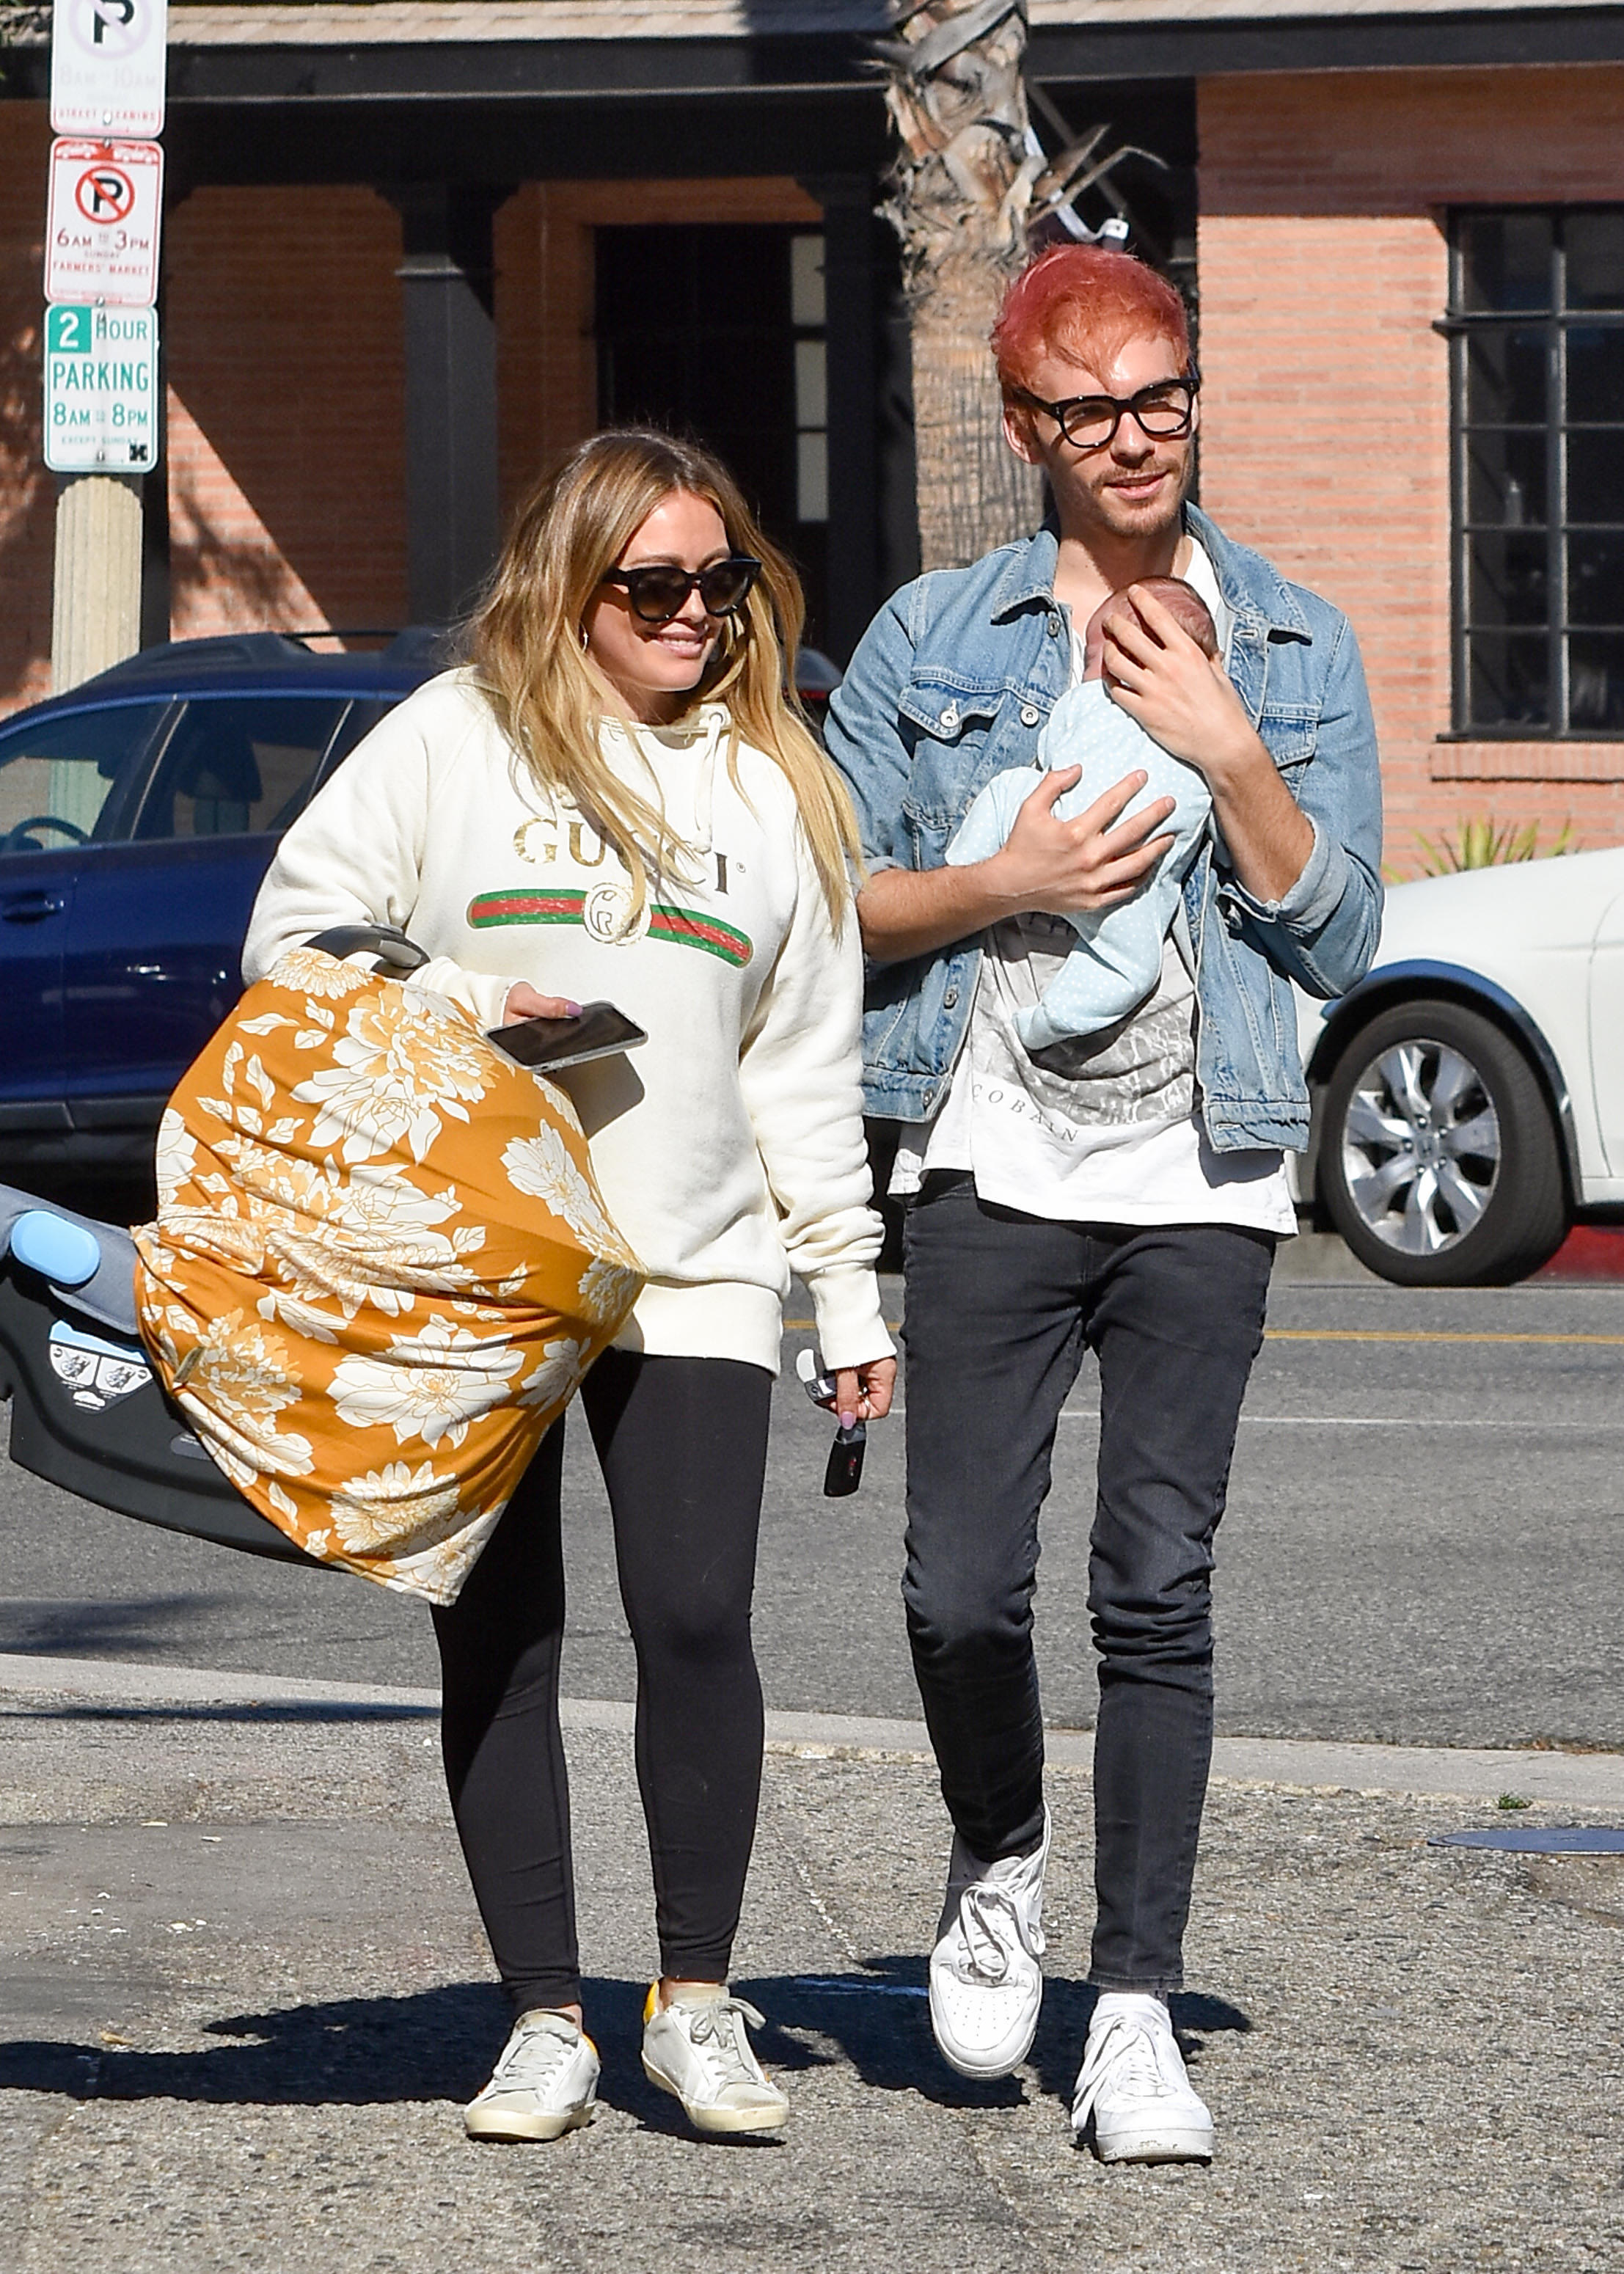 Hilary Duff and Matthew Koma are spotted out and about in Los Angeles on Nov. 9, 2018.